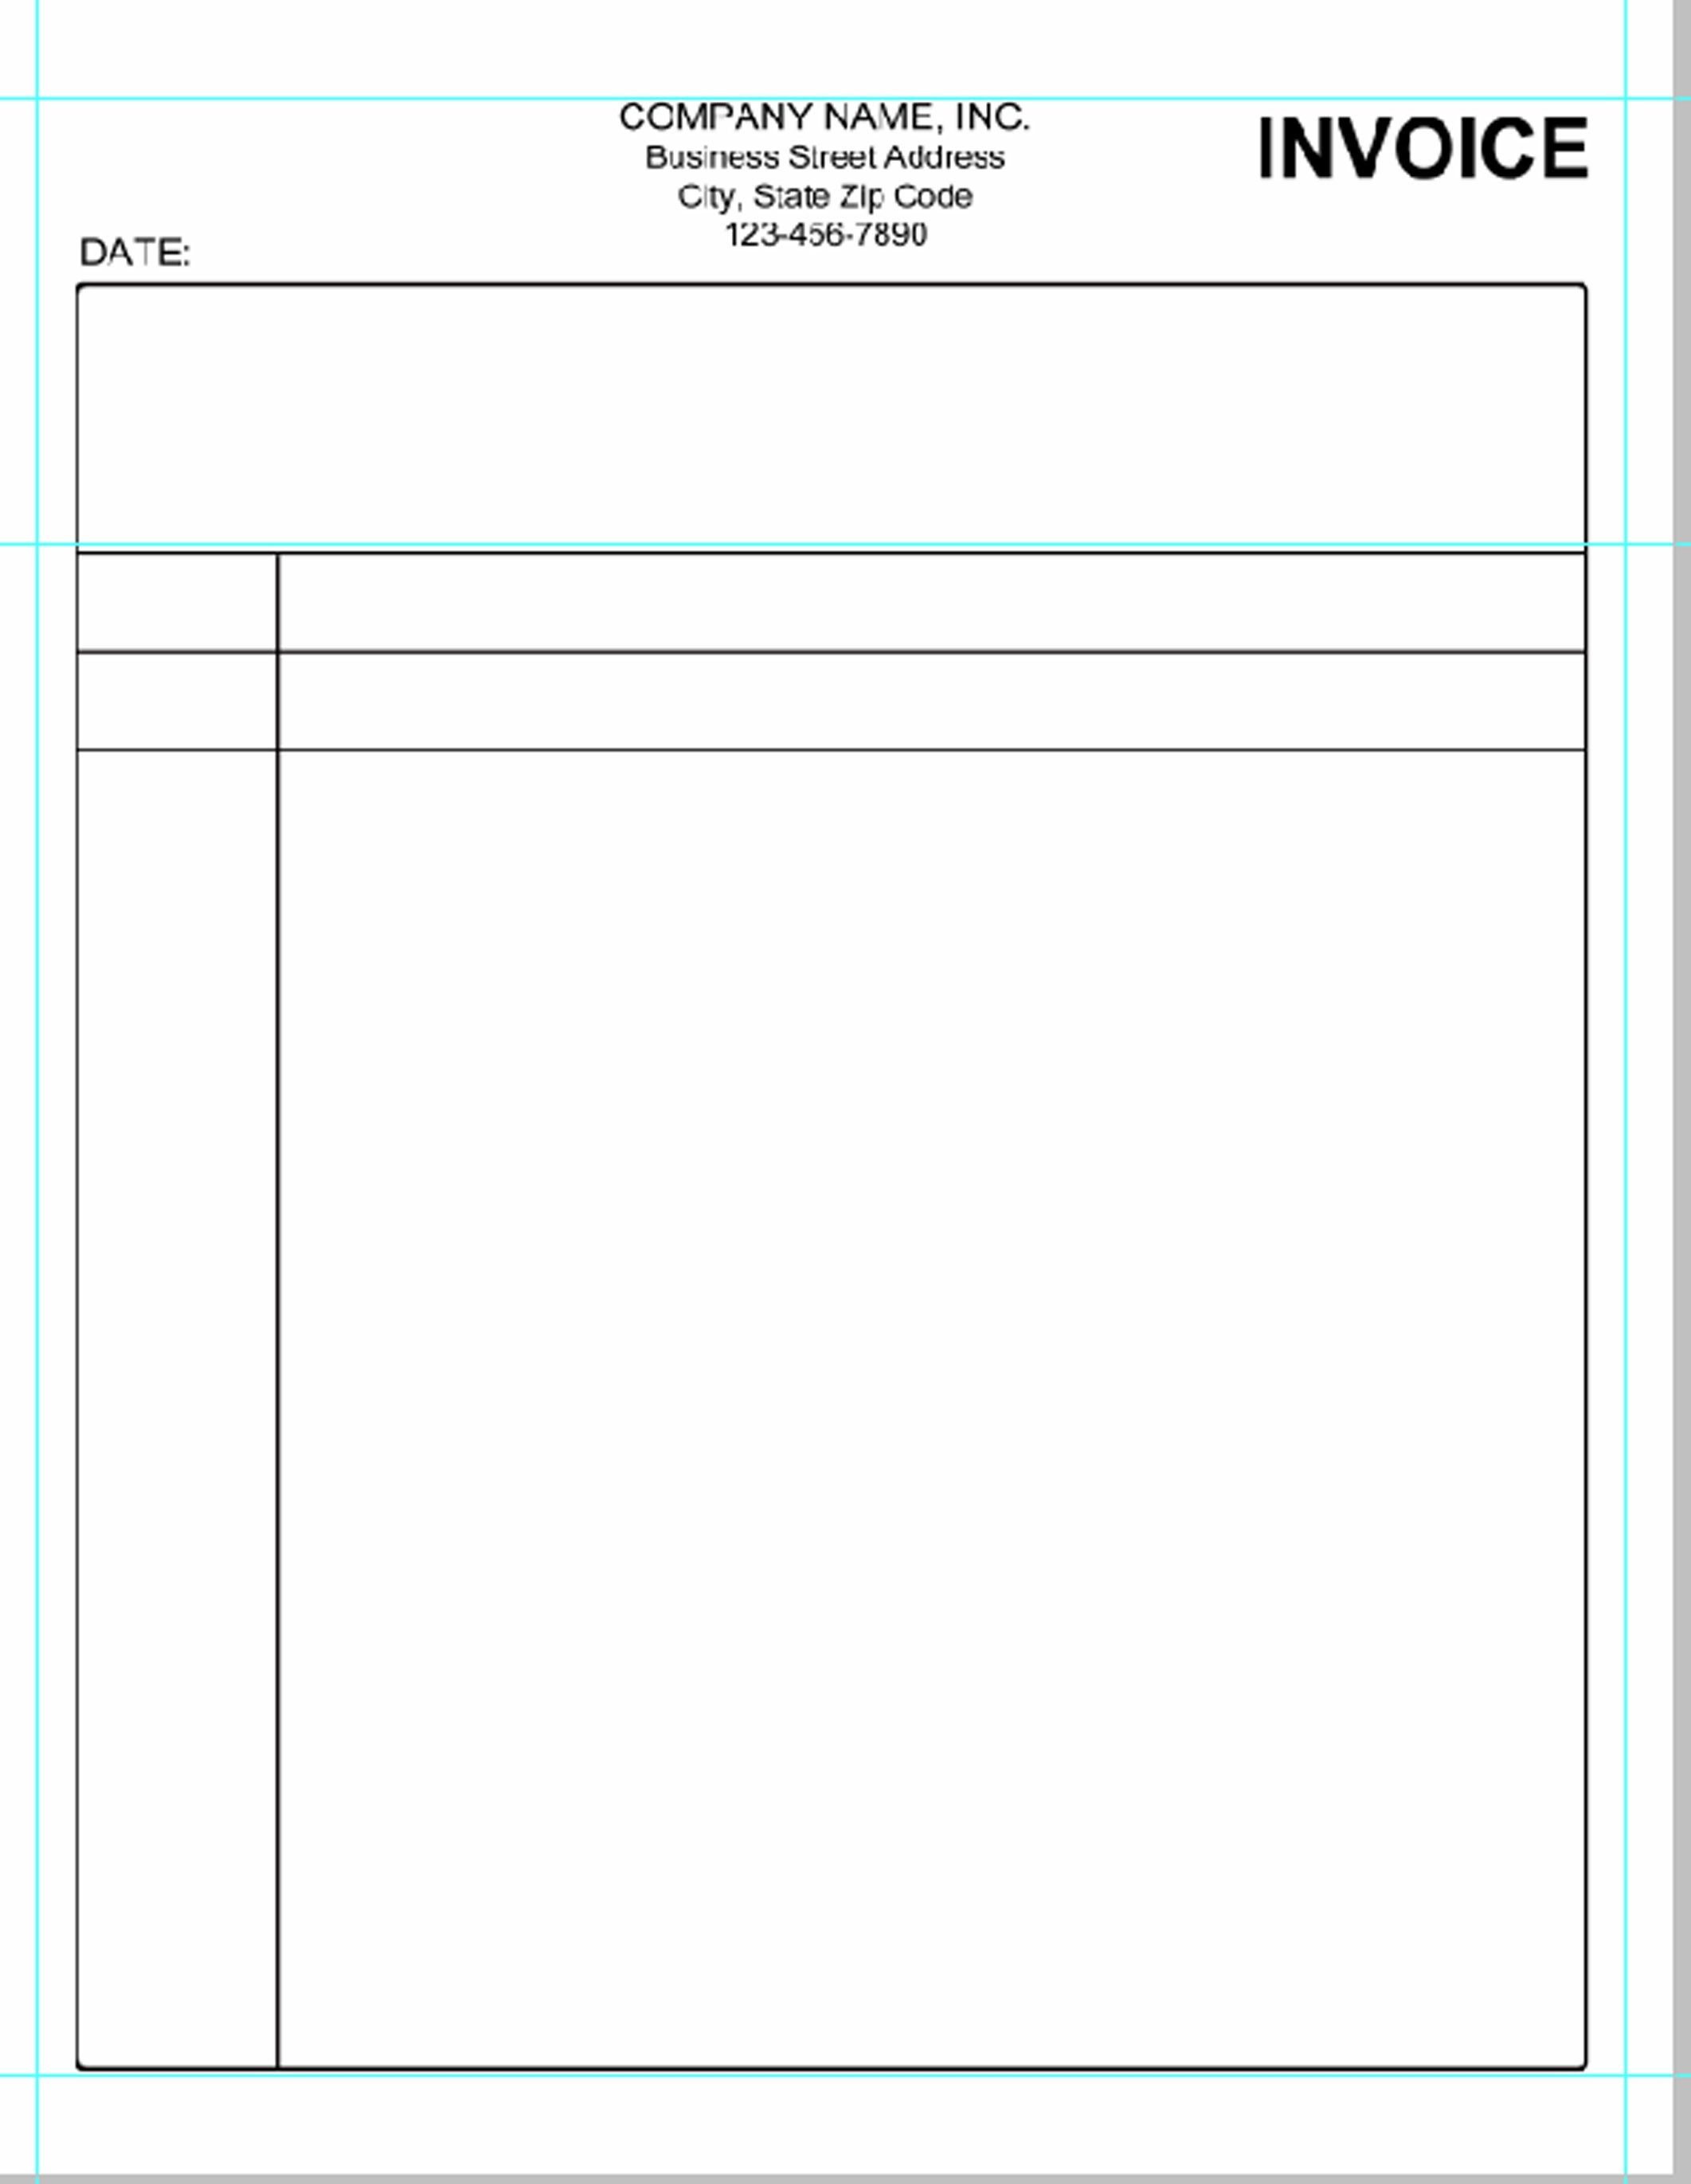 Blank Invoice Template Microsoft Word Invoice Template Free Simple Invoice Template